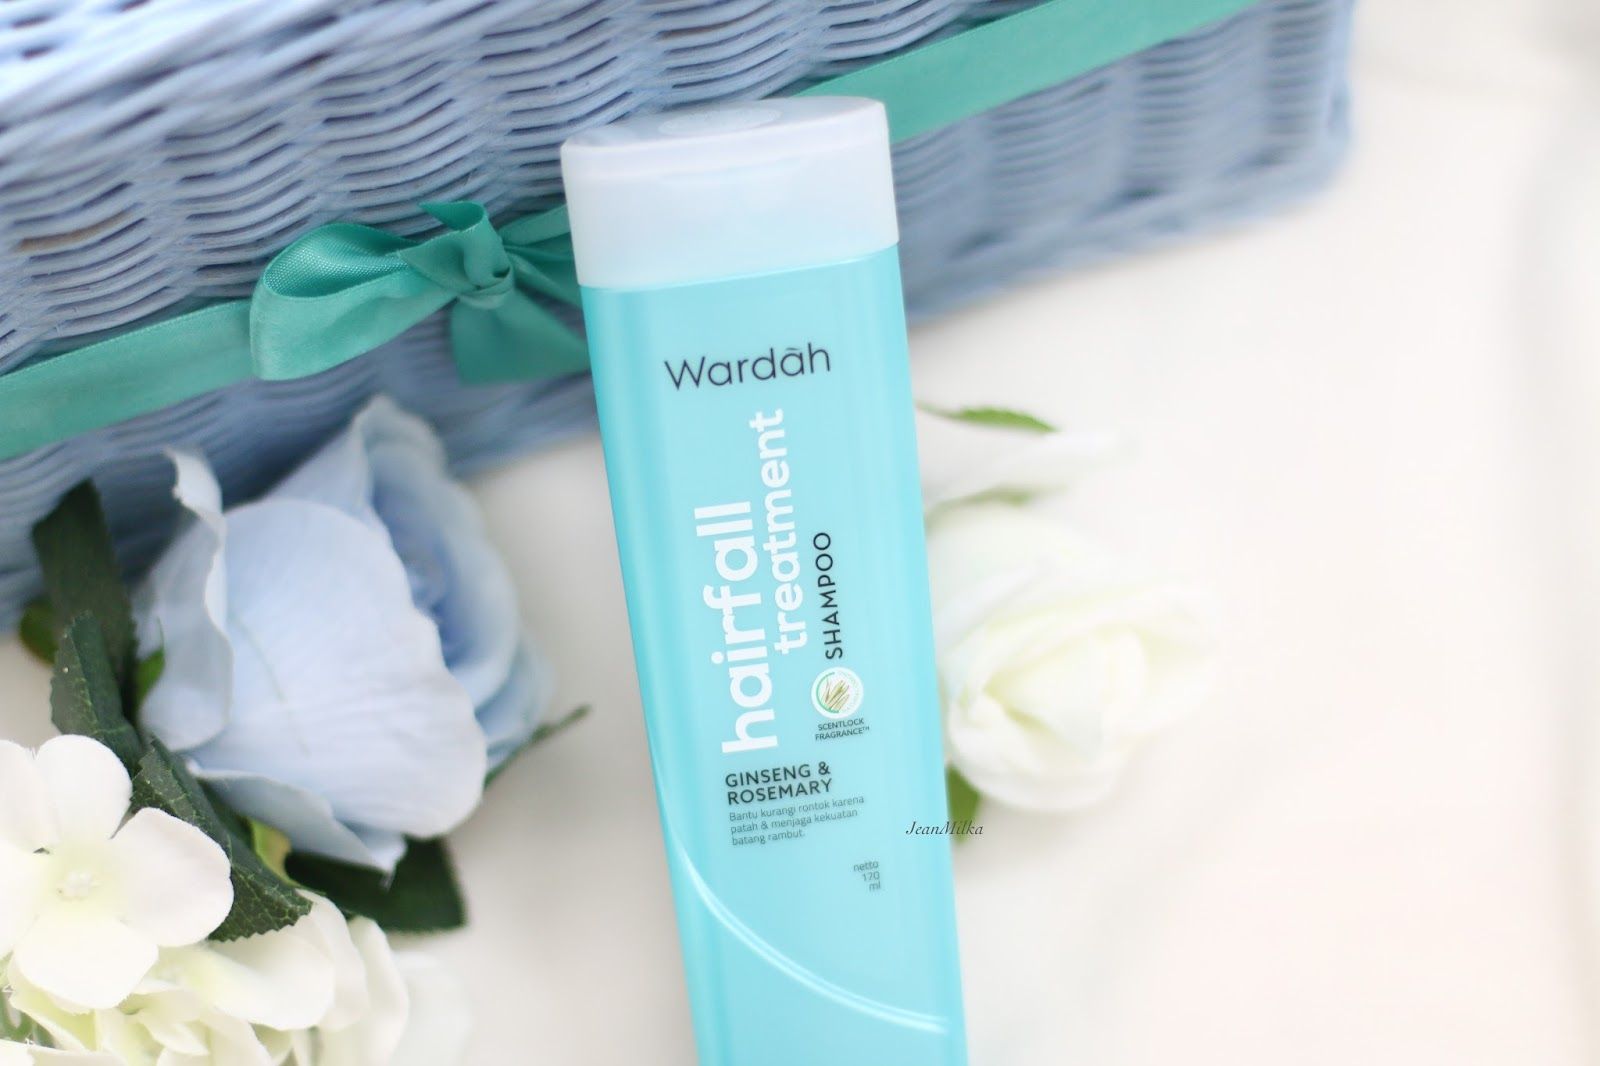 review, wardah, wardah shampoo, sampo wardah, sampo hijab, shampoo hijab, hijab, wardah beauty, wardah shampoo hairfall treatment